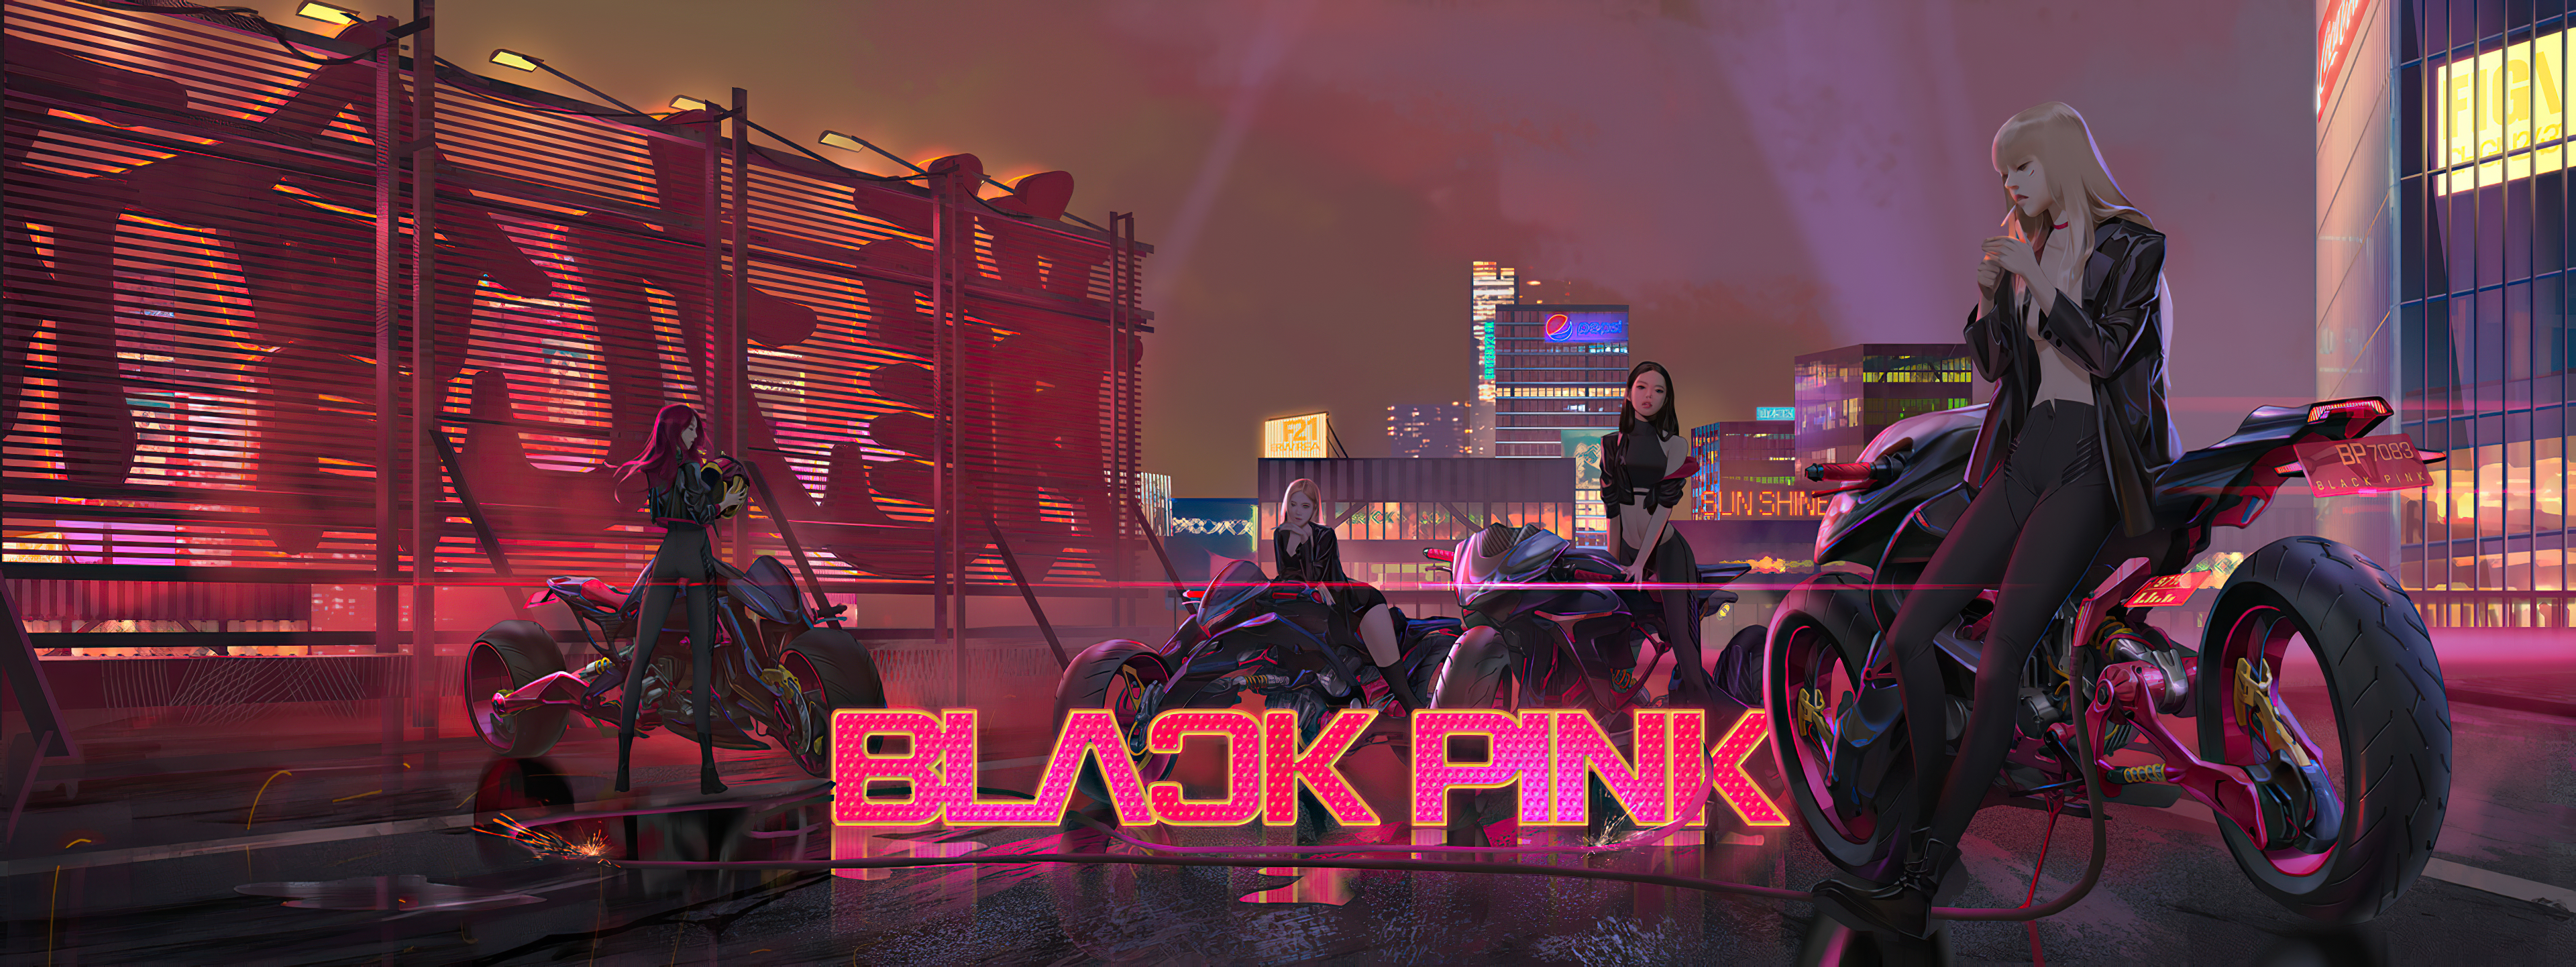 Blackpink 4k Hd Music 4k Wallpapers Images Backgrounds Photos And Pictures